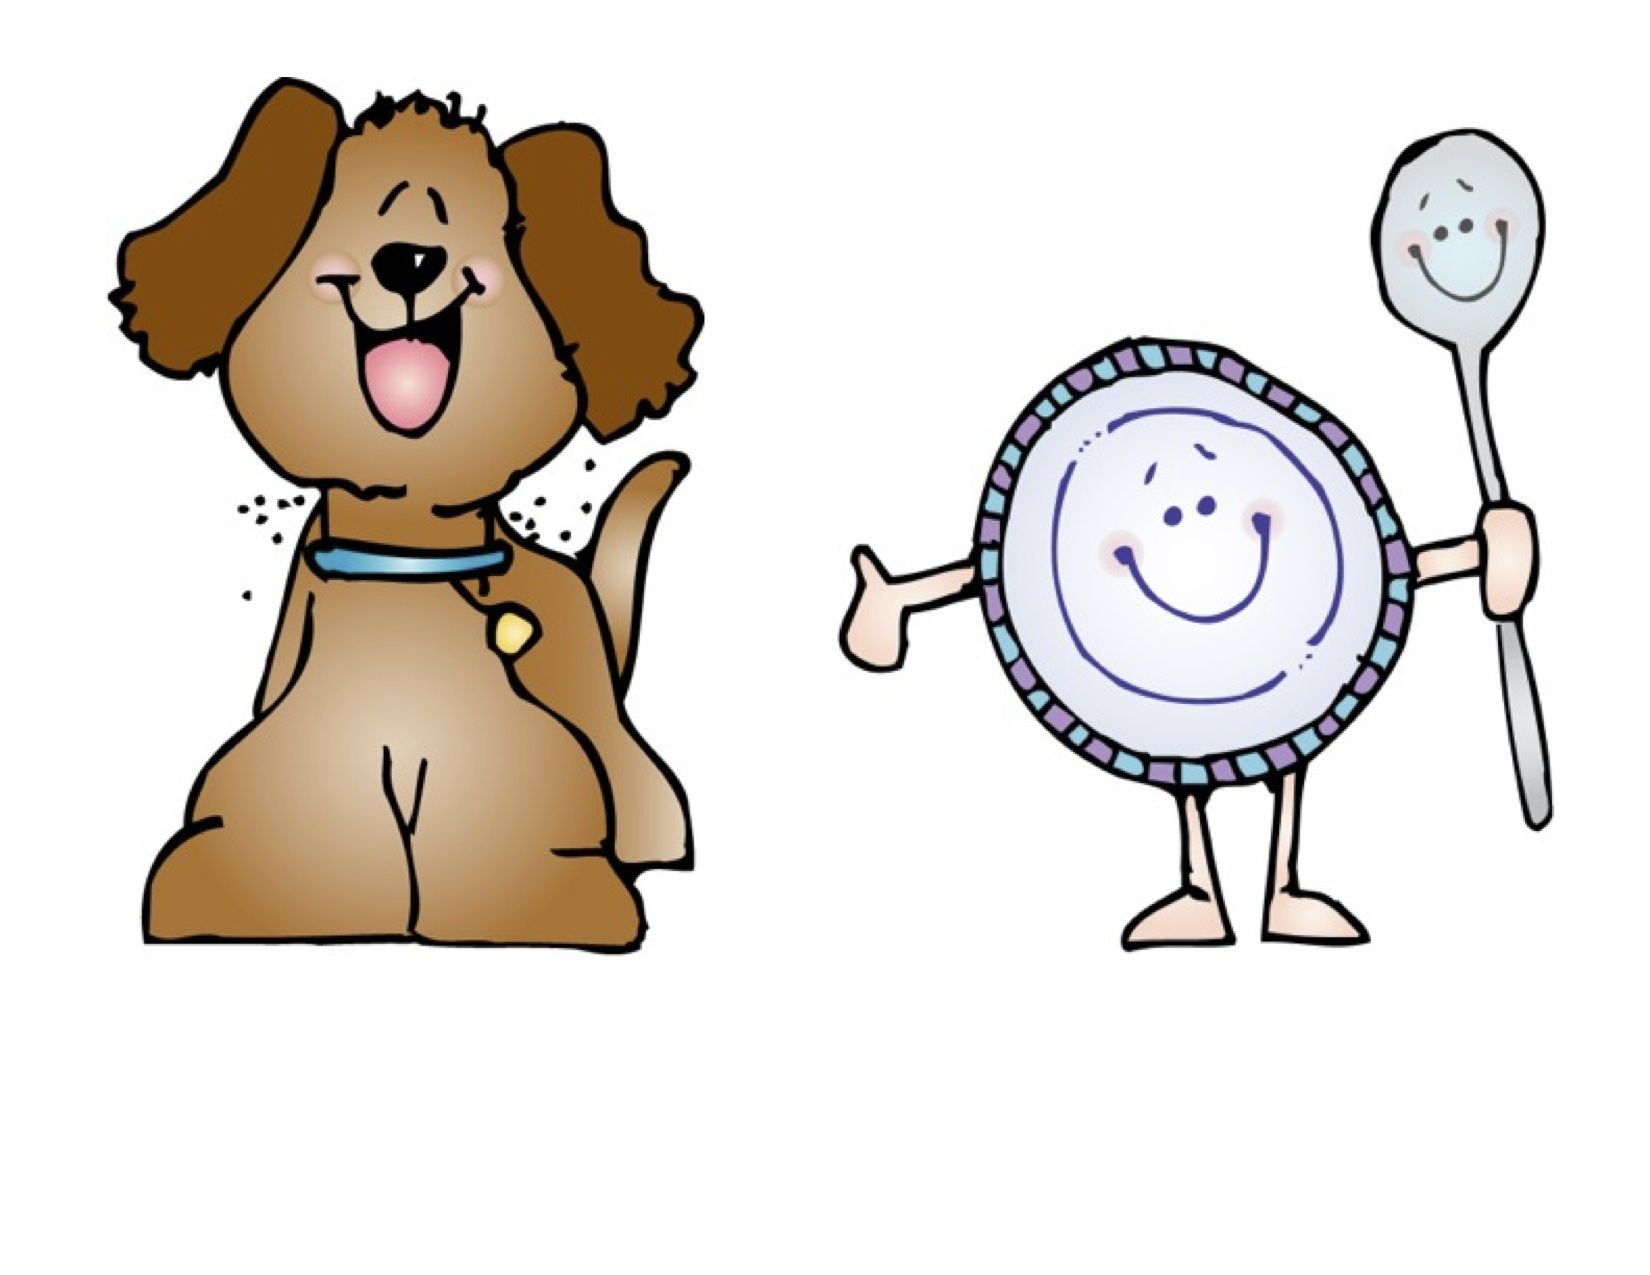 1650x1275 Nursery Rhyme Characters For Retelling Or Other Activities.